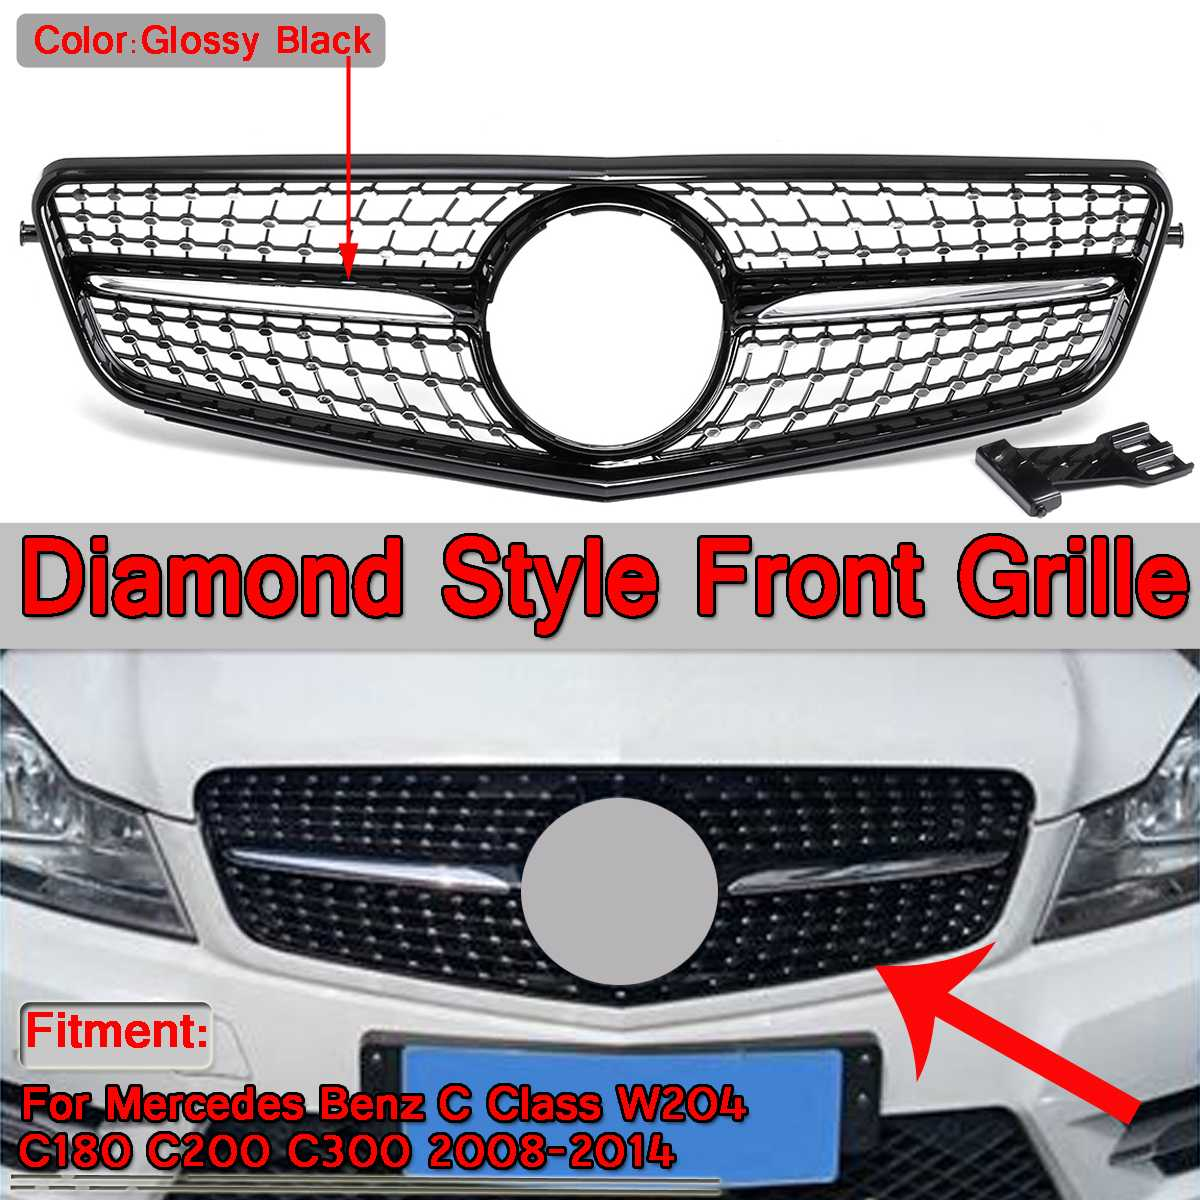 W204 Diamond Style Grille Glossy Black Car Front Bumper Grille Grill For Mercedes For Benz C-Class W204 C180 C200 C300 2008-2014